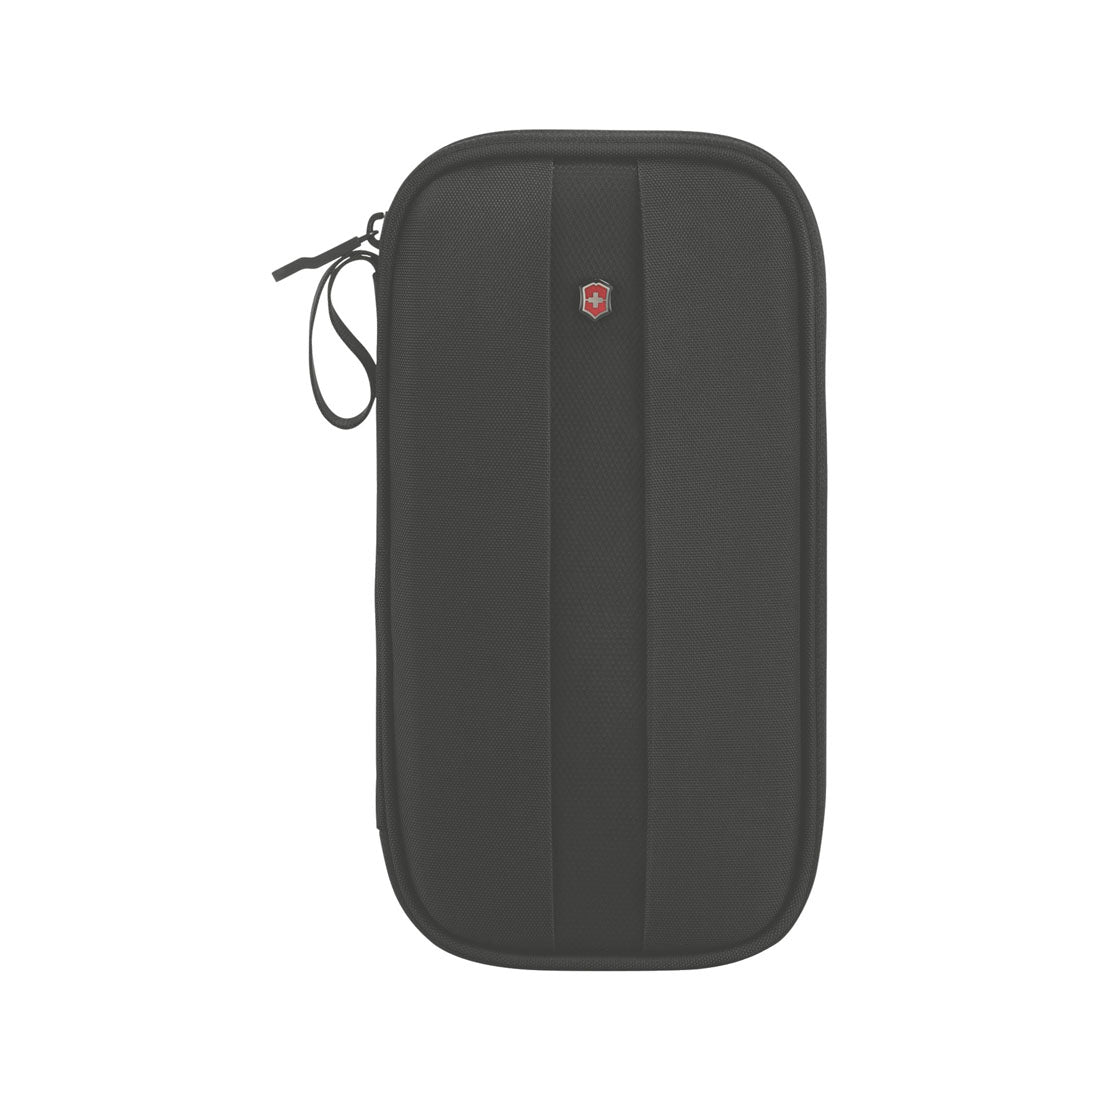 Victorinox Travel Organiser with RFID Protection